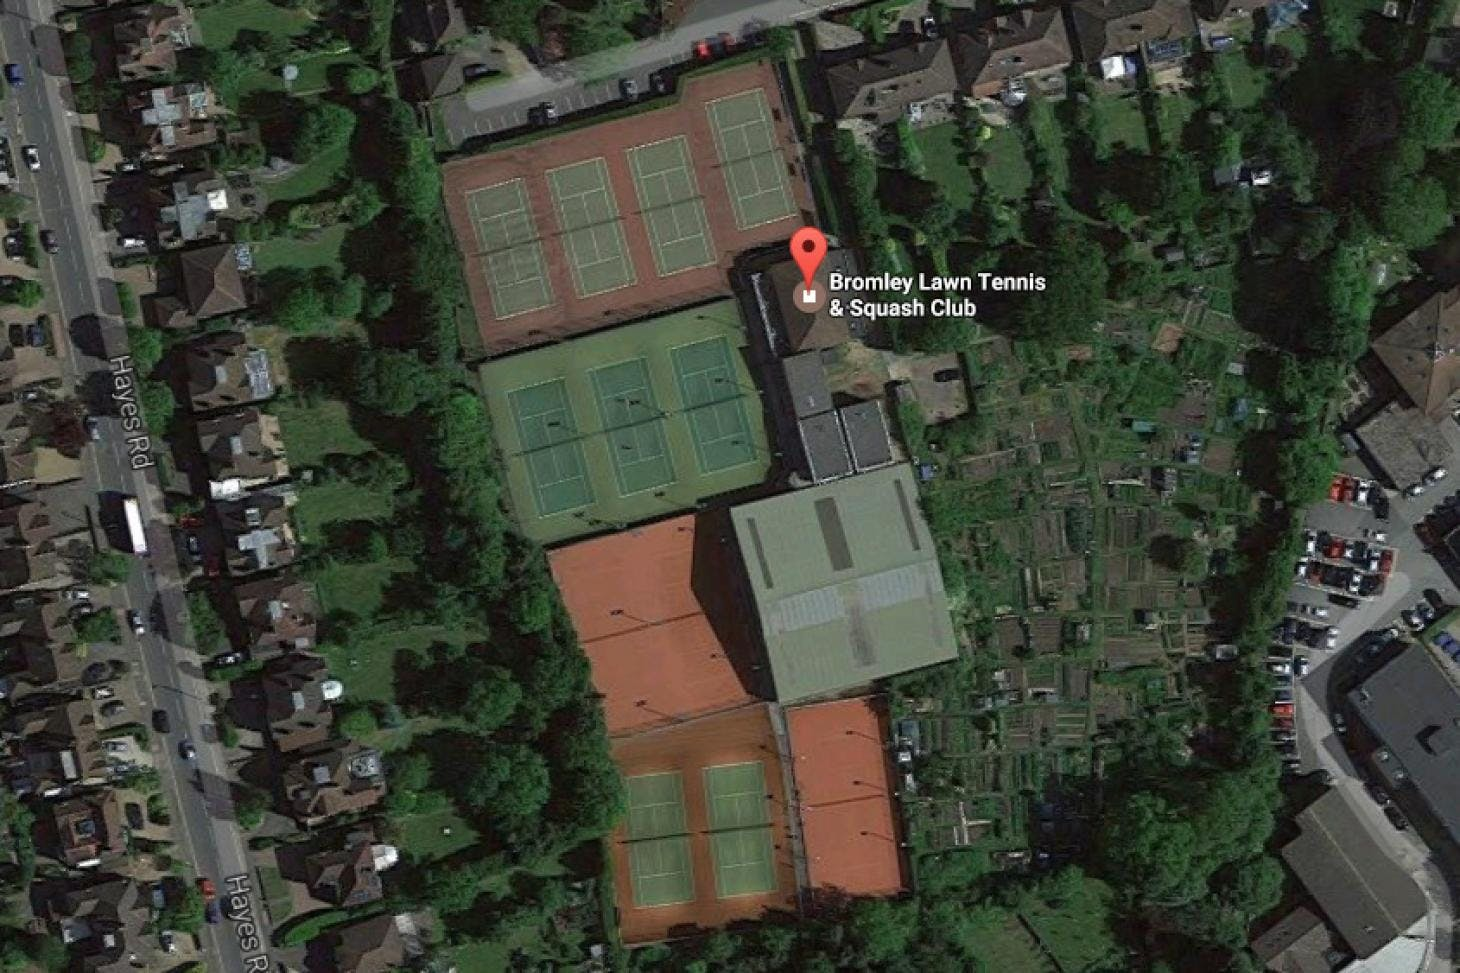 Bromley Lawn Tennis and Squash Club Outdoor | Clay tennis court